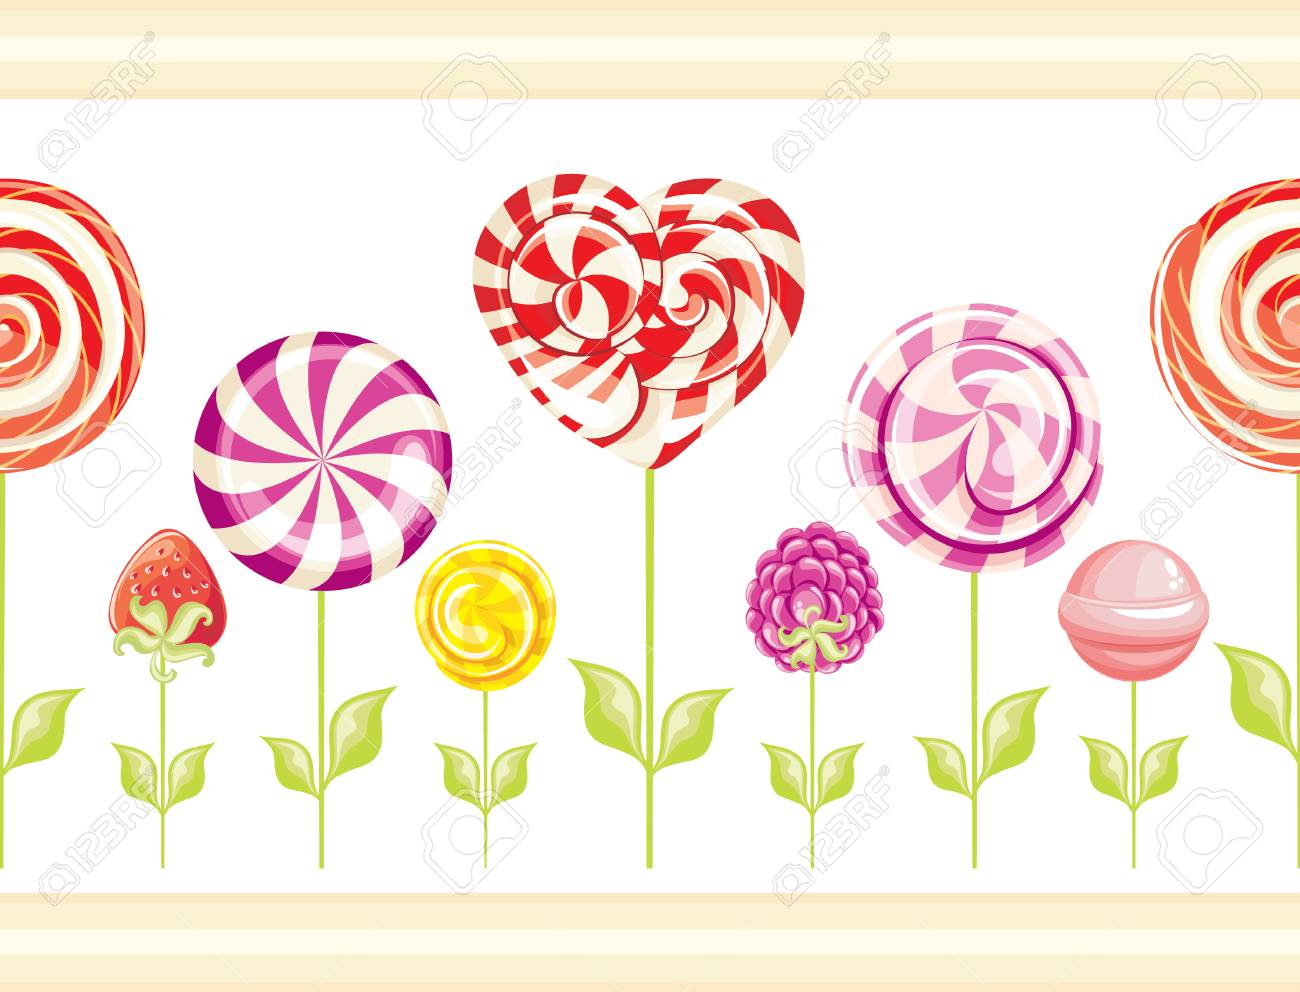 Seamless Wallpaper Border With Abstract Flowers With Sweet